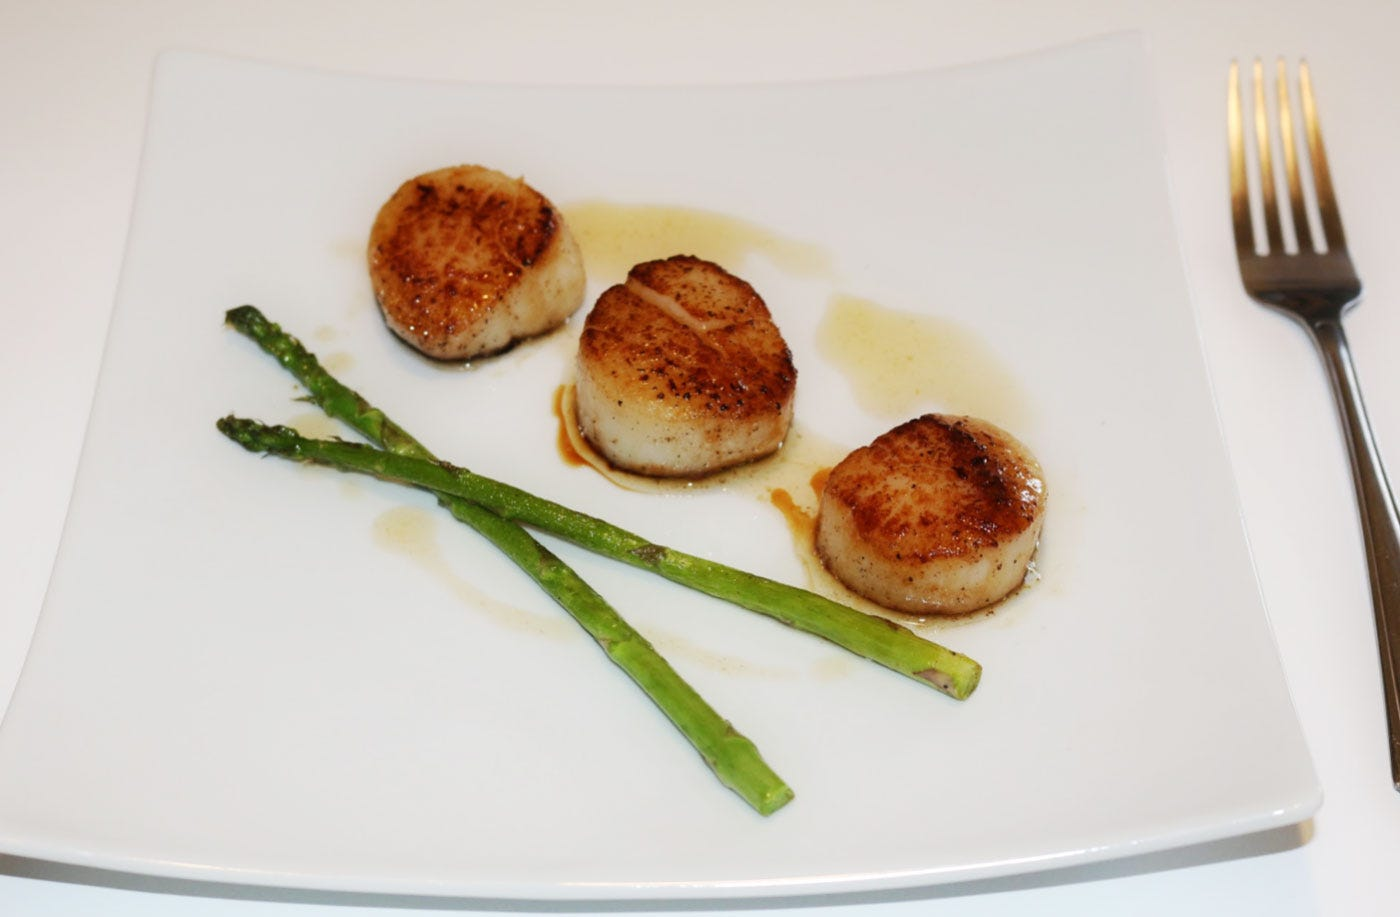 Three scallops and two pieces of asparagus finished with brown butter on a plate.